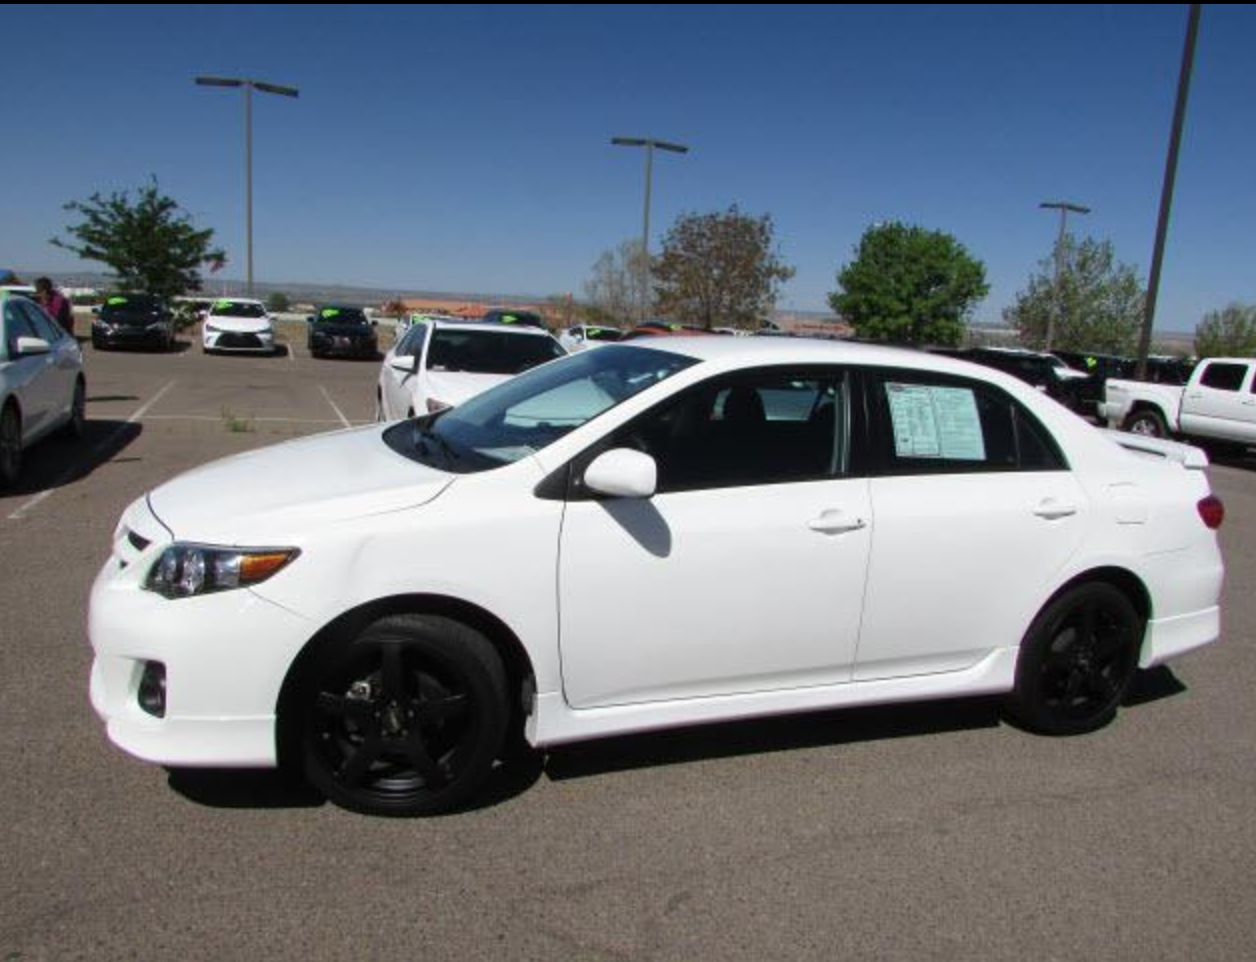 Turn Heads In This New To You 2013 Toyota Corolla Rims Included See The Deal Toyota Corolla Toyota Corolla